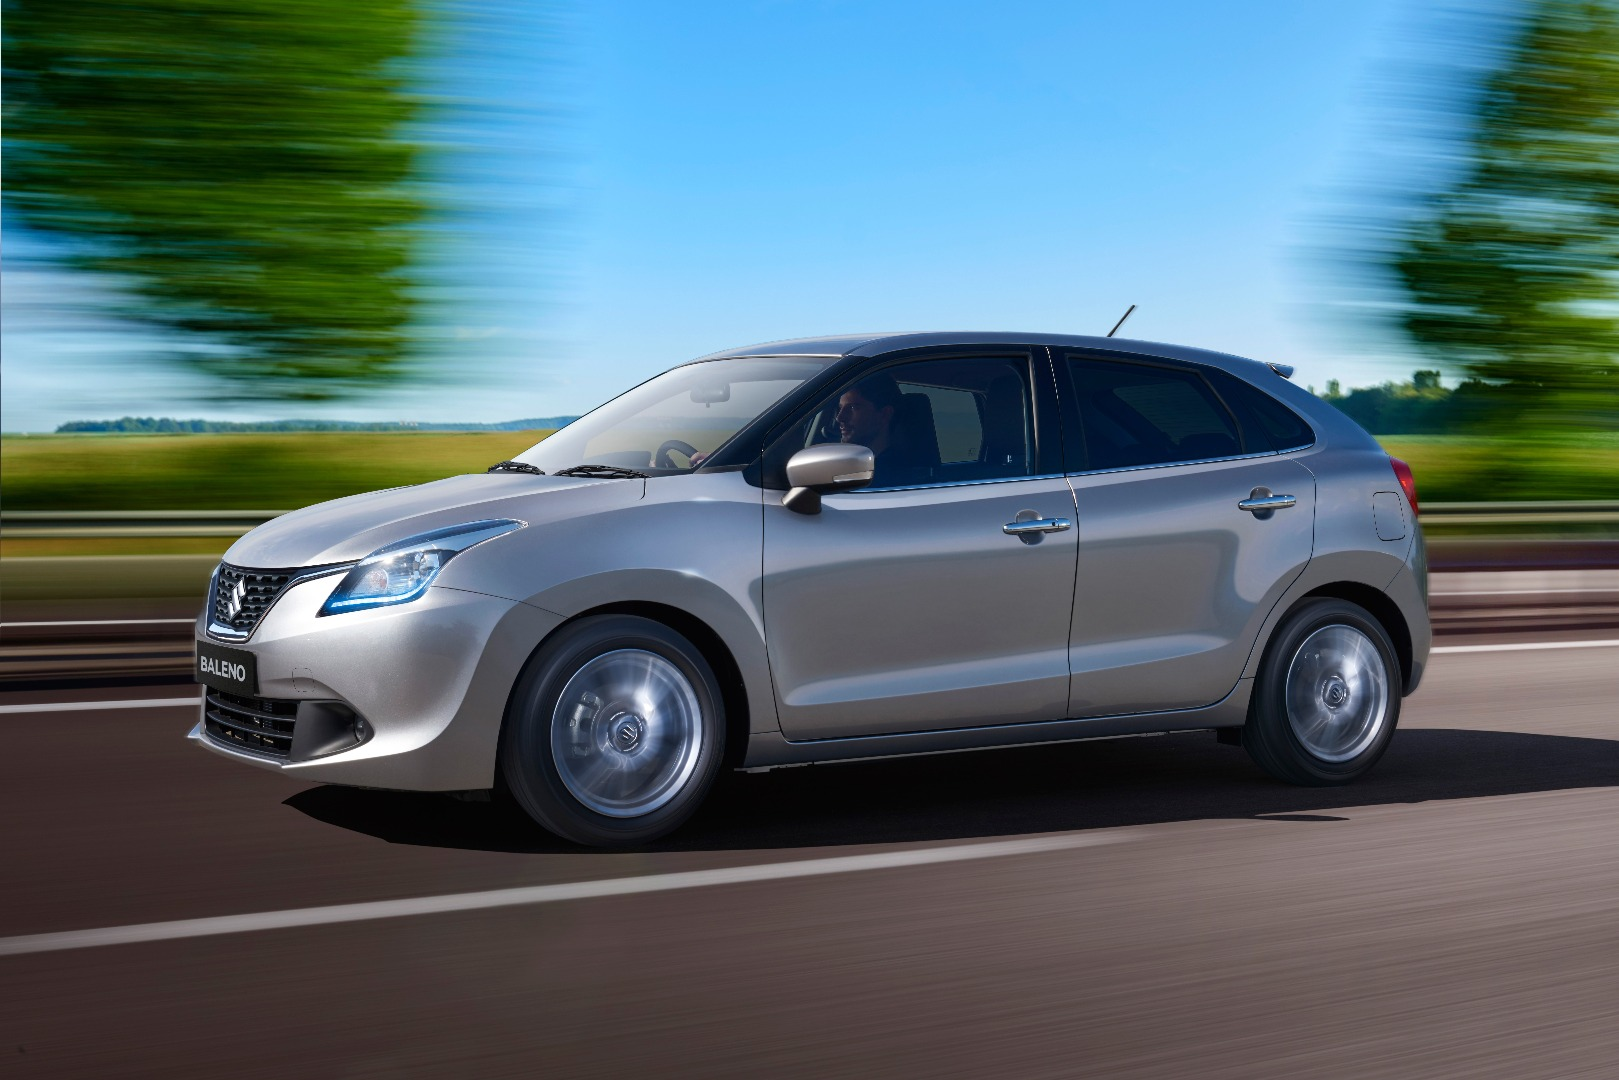 Alfa Romeo Price >> News - Suzuki Australia Introduces All-New Baleno